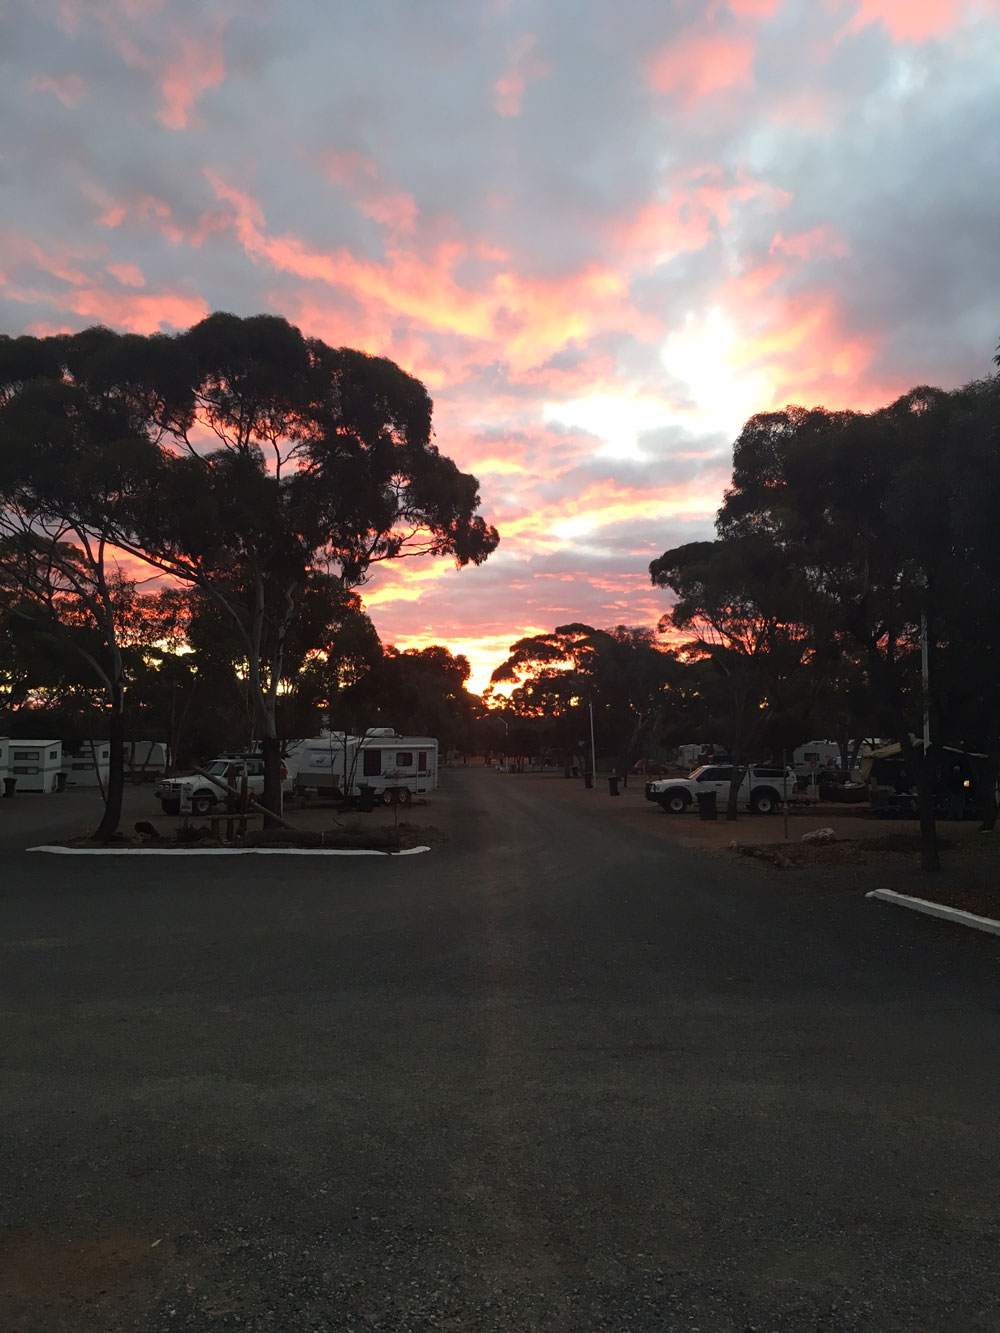 Gateway Caravan Park welcomes you to Norseman